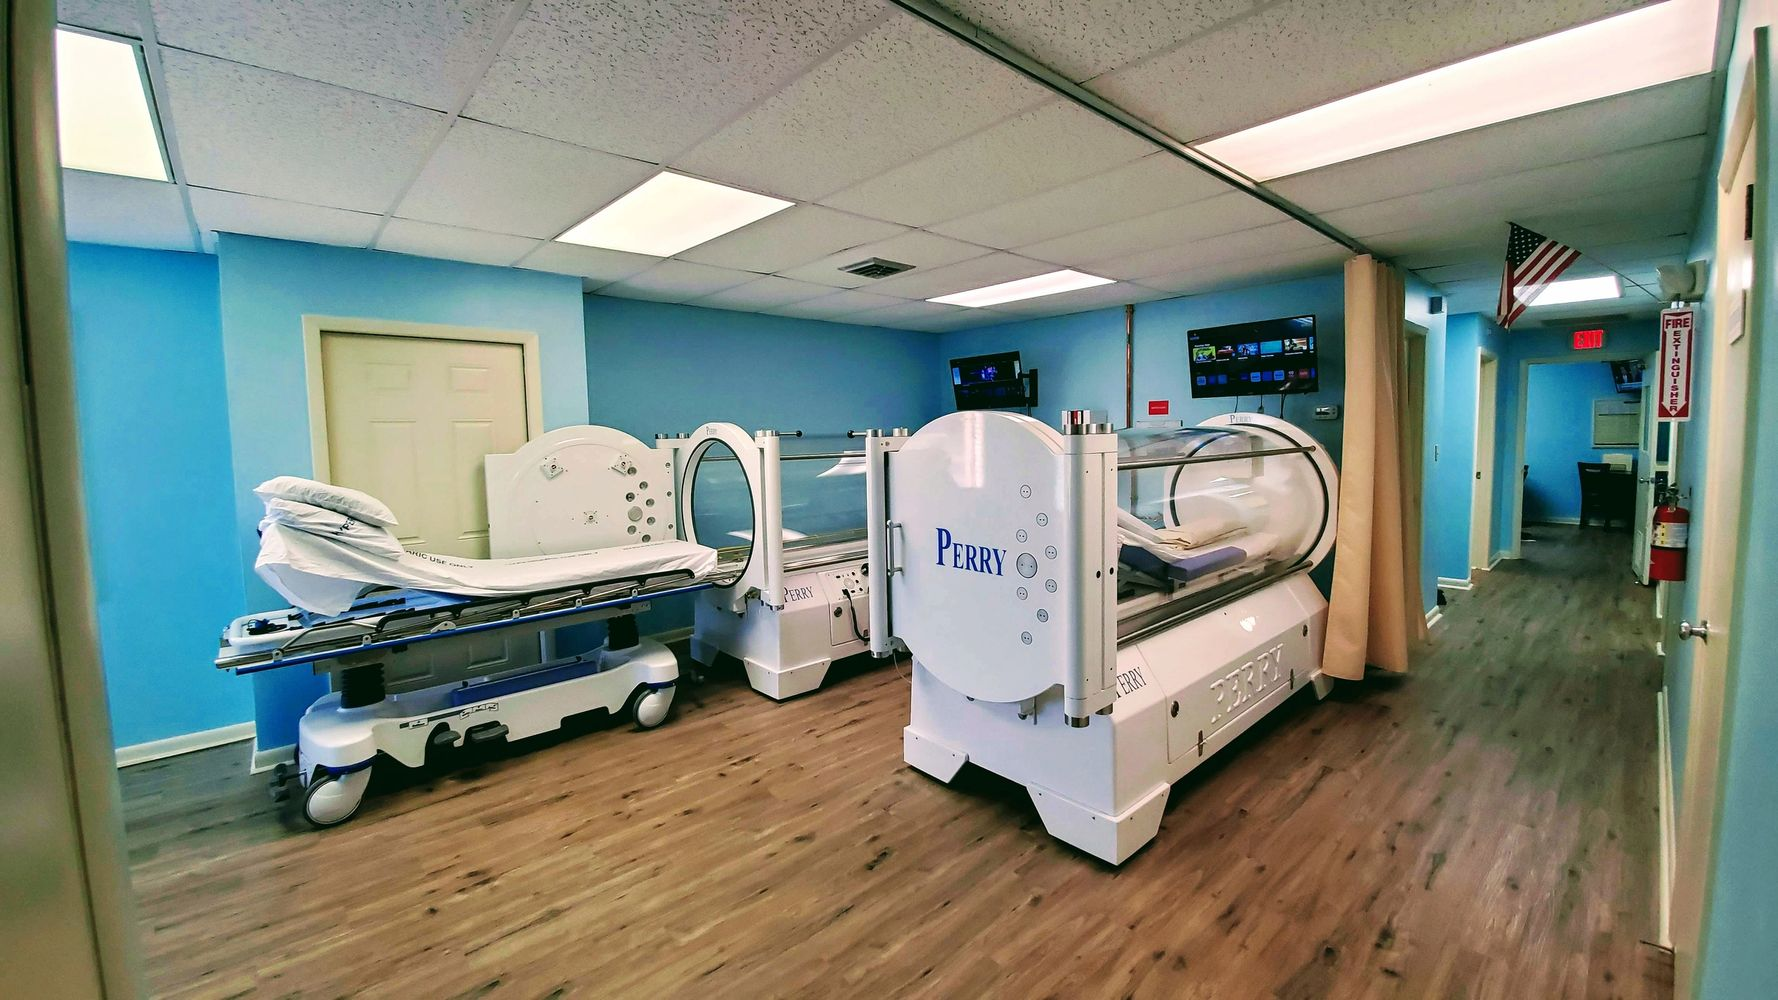 Hyperbaric Health Services - Palatka Perry Sigma 34 Monoplace Hyperbaric Chamber